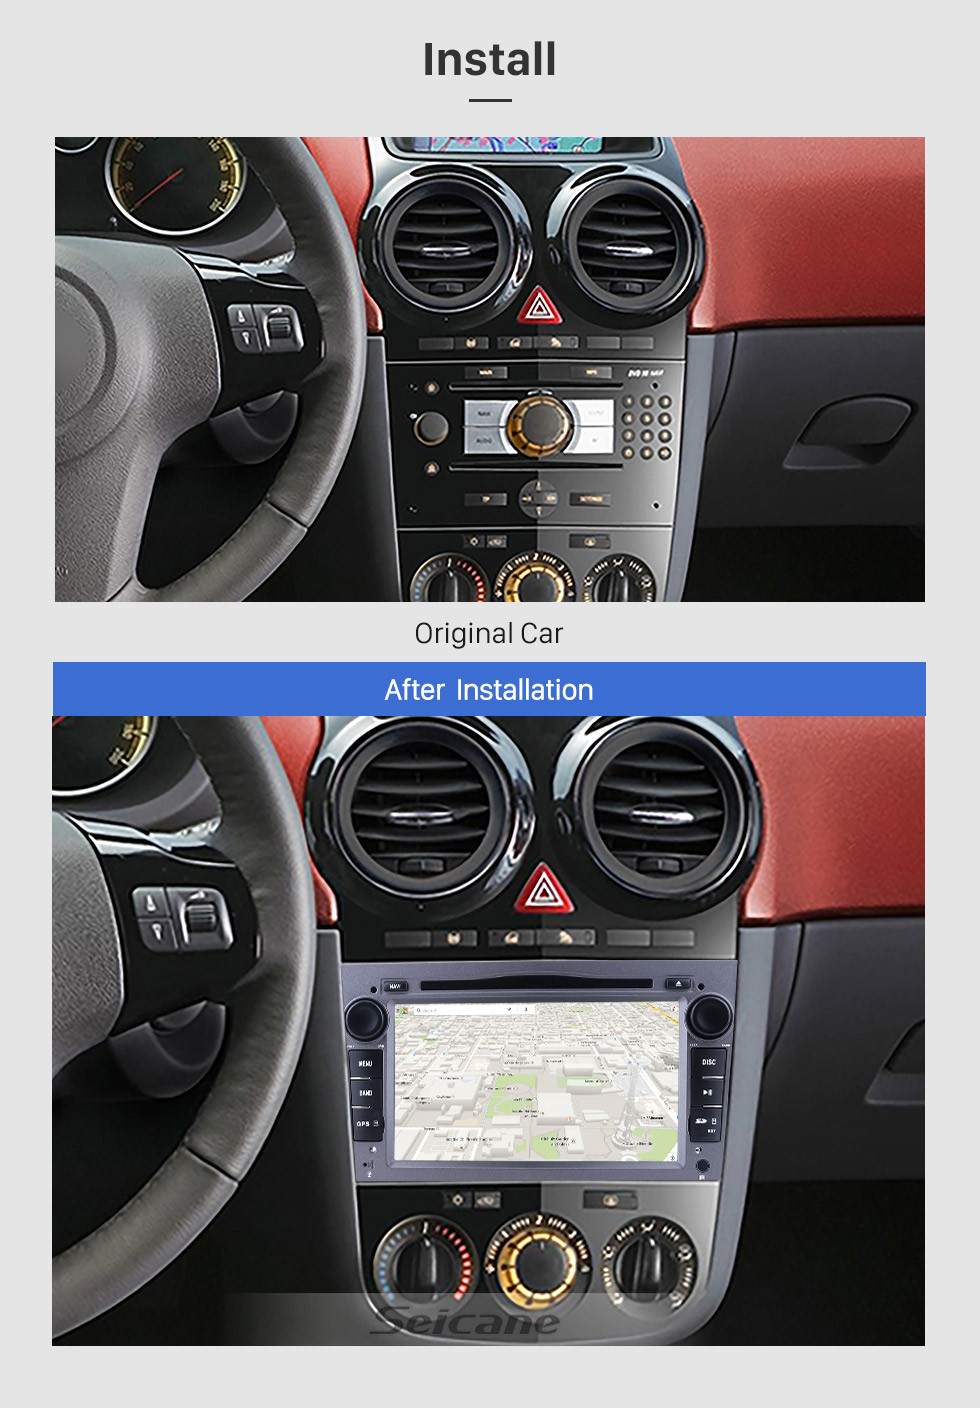 Seicane 7 inch Android 9.0 2005-2012 Opel Antara HD 1024*600 Touch Screen in Dash GPS Radio Bluetooth System with CD DVD Player 3G WiFi 1080P Steering Wheel Control AUX Mirror Link OBD2 1080P